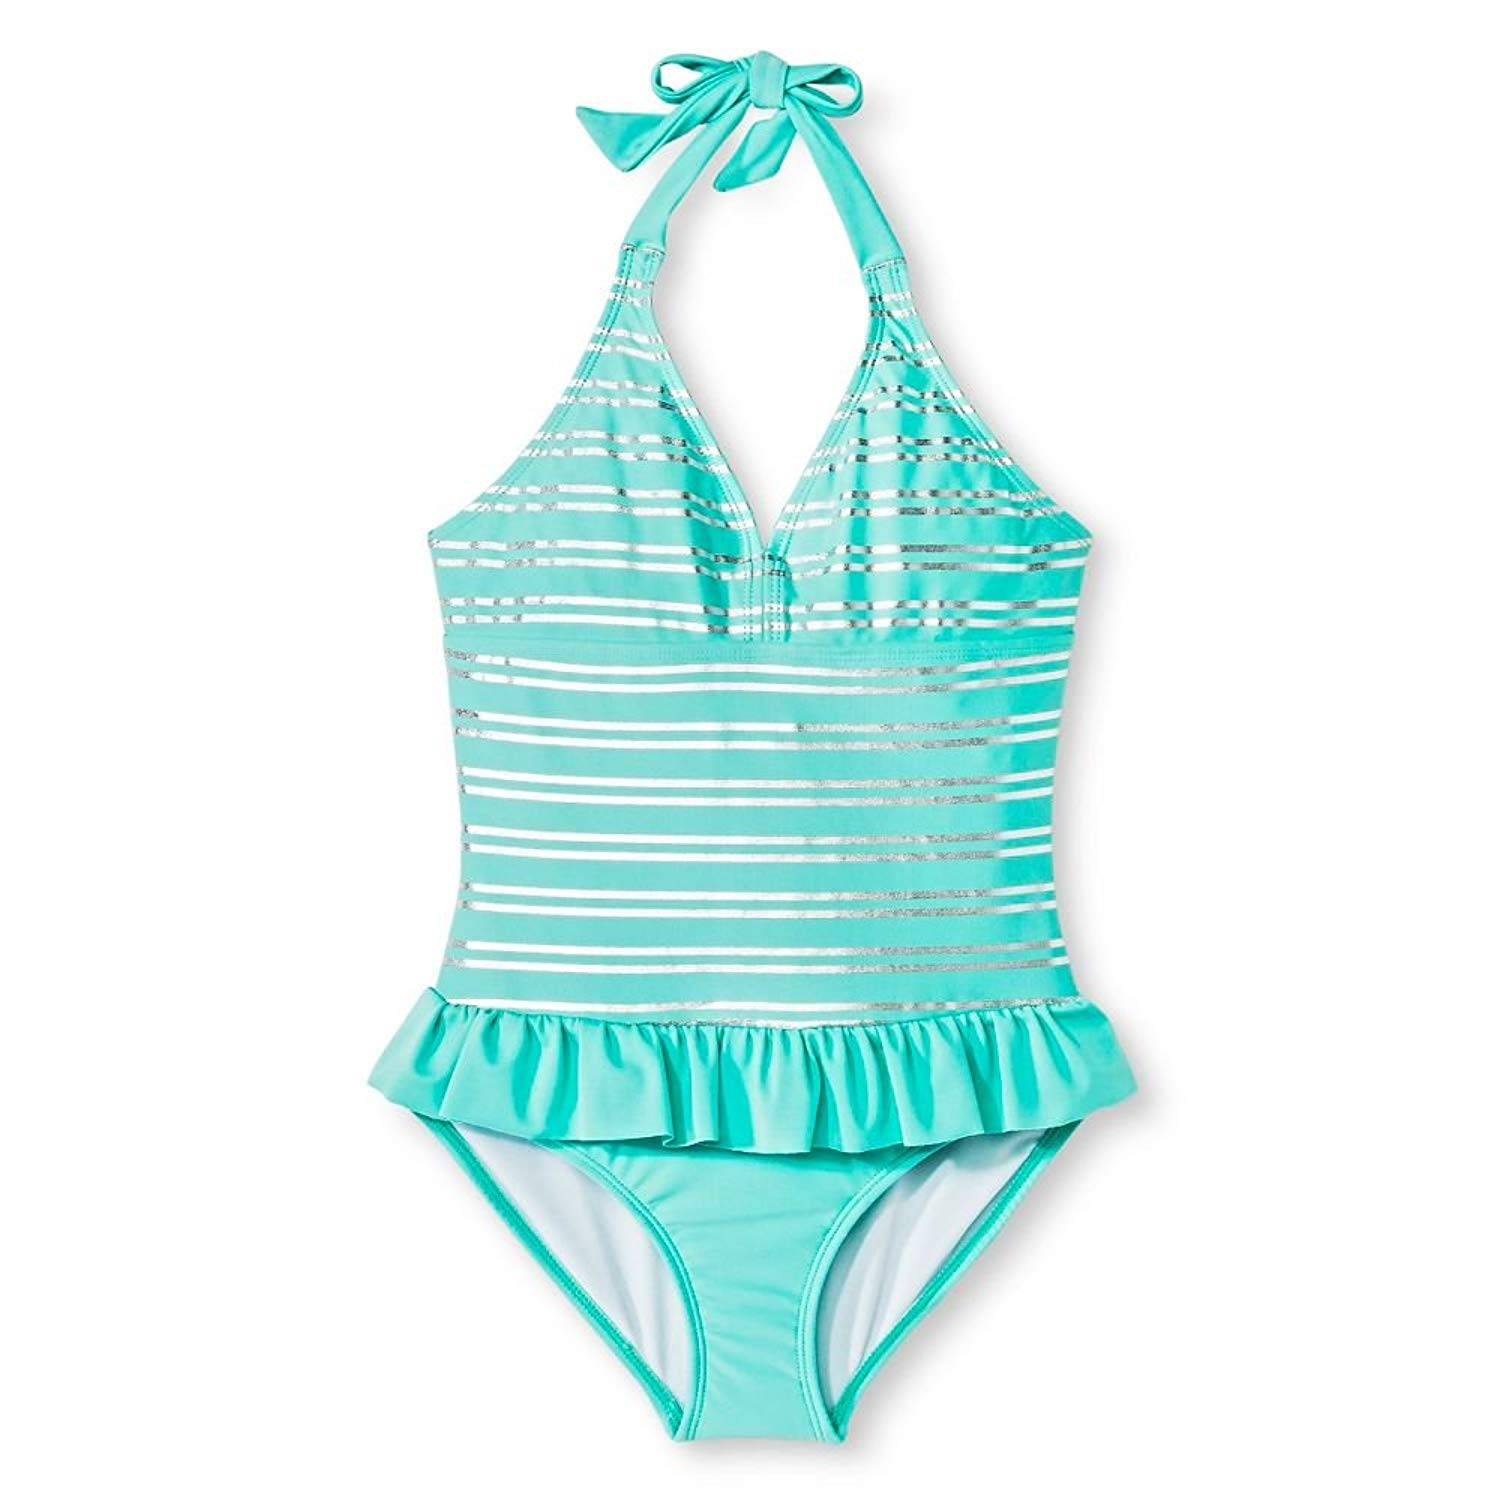 Silver Stripes /& Ruffle Details Circo Girls One Piece Silver Stripe Halter Swimsuit